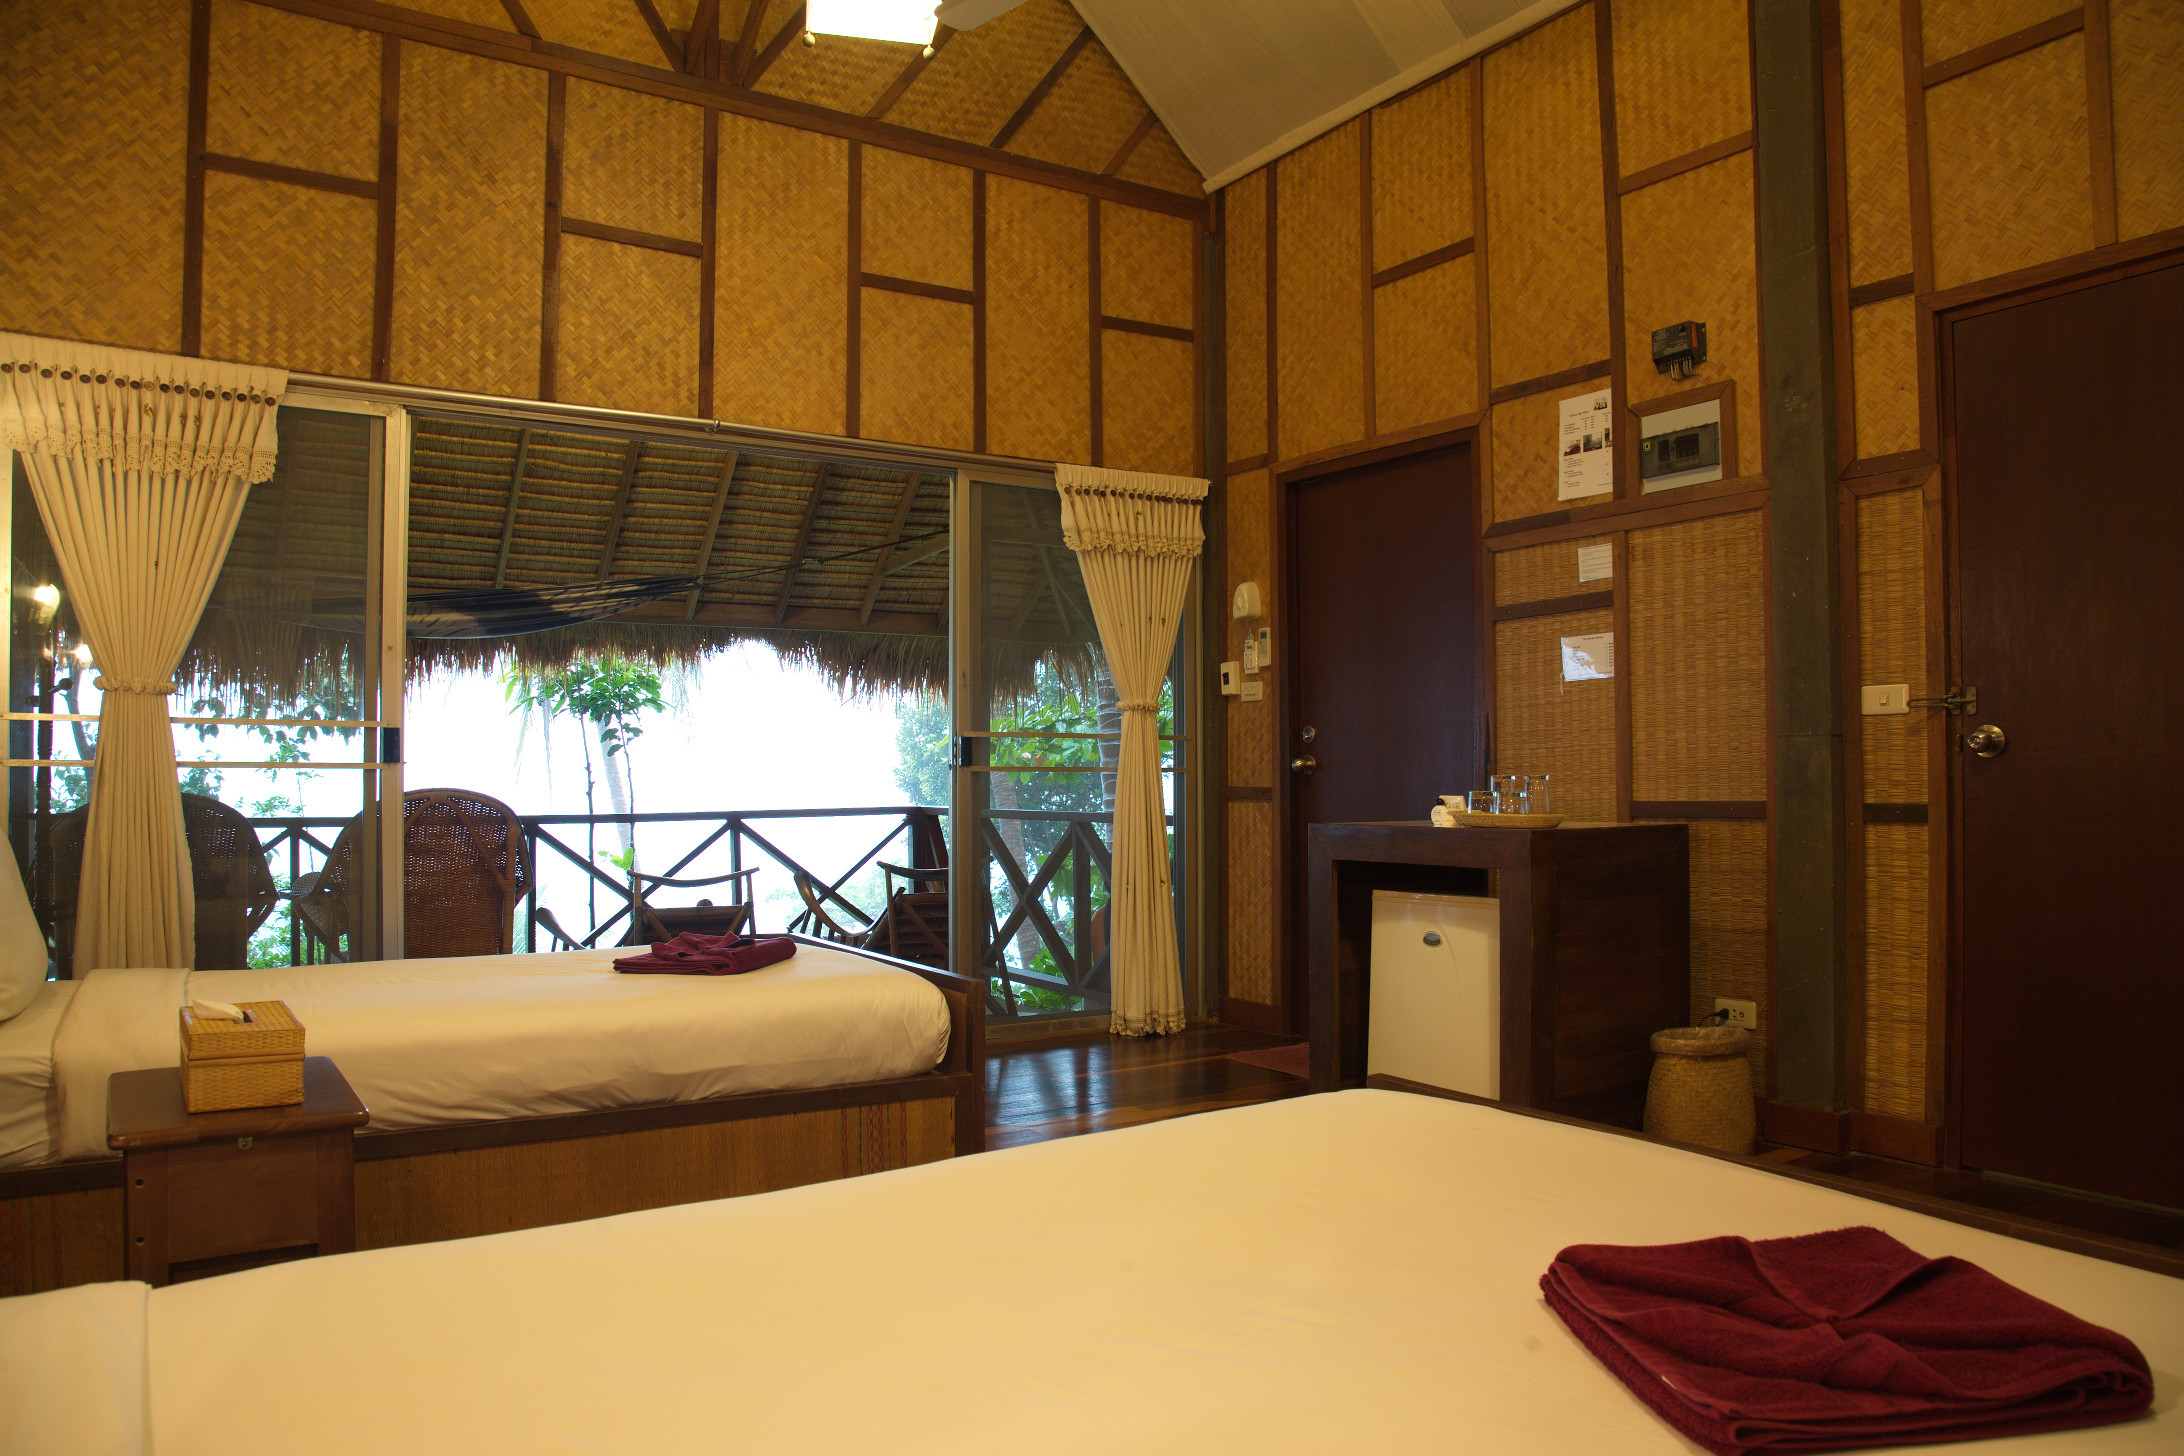 Stylish Bungalows bungalow | narima bungalow resort